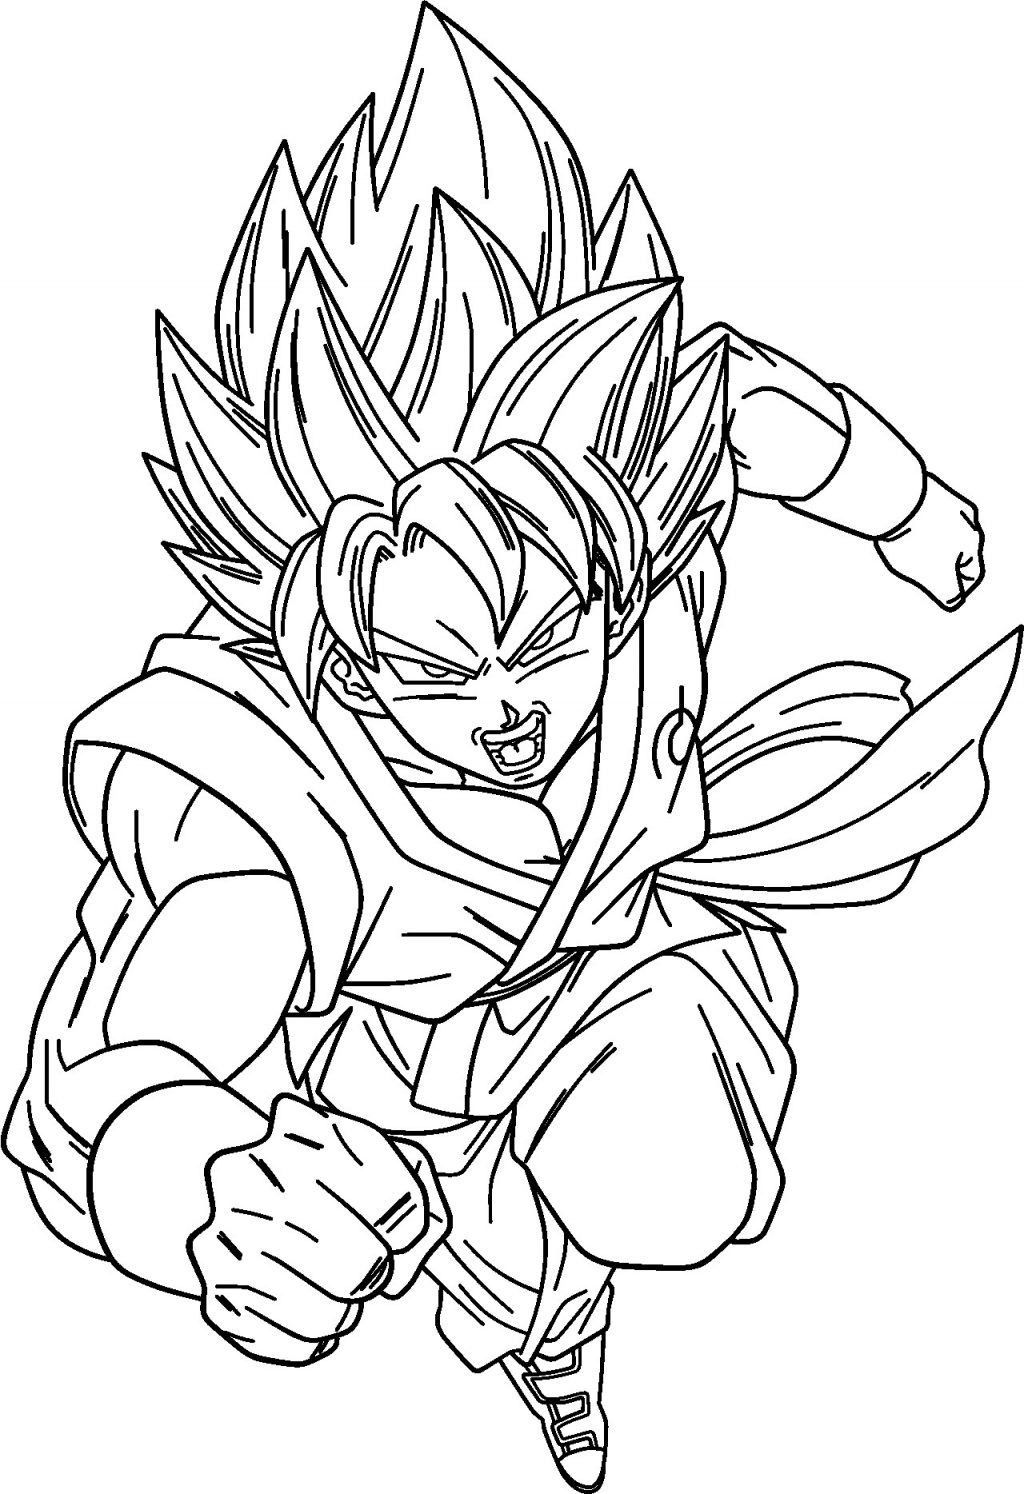 Dragon Ball Coloring Page Youngandtae Com In 2020 Dragon Coloring Page Super Coloring Pages Coloring Books